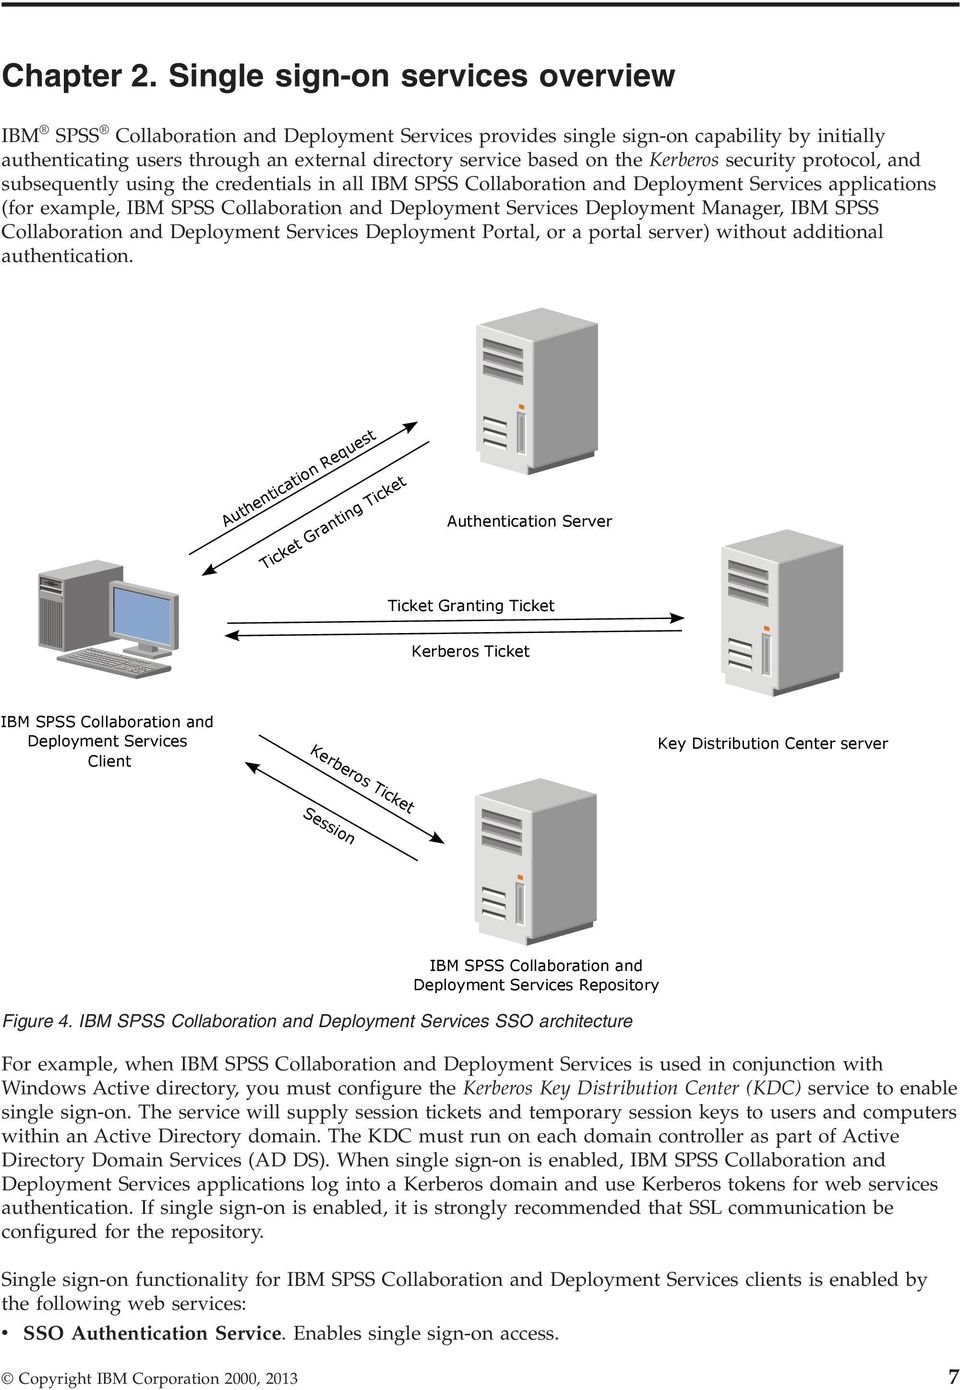 Kerberos security protocol, and subsequently using the credentials in all IBM SPSS Collaboration and Deployment Services applications (for example, IBM SPSS Collaboration and Deployment Services